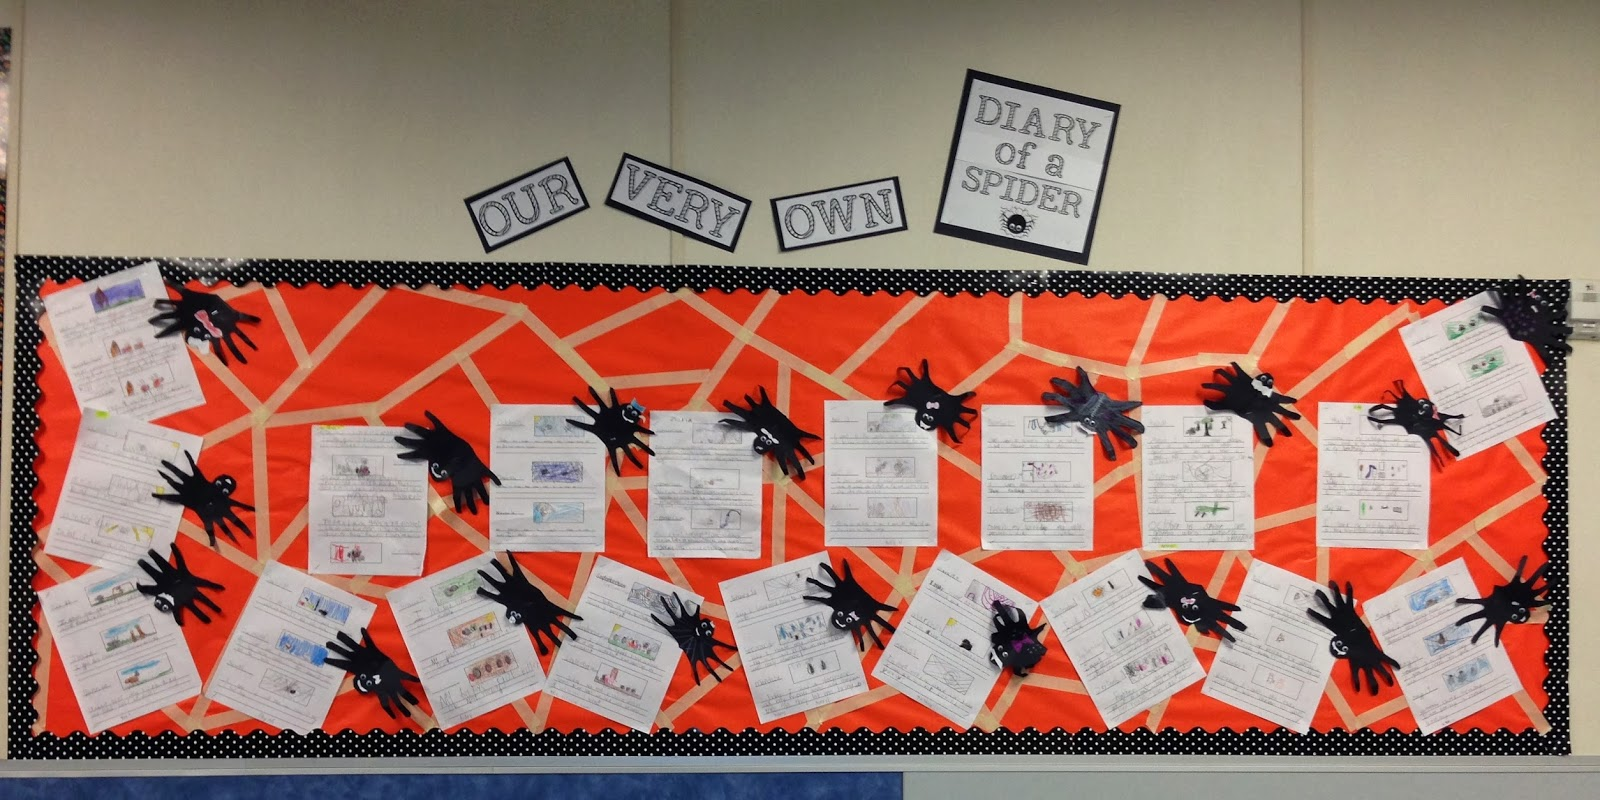 Mrs Megown S Second Grade Safari Diary Of A Spider